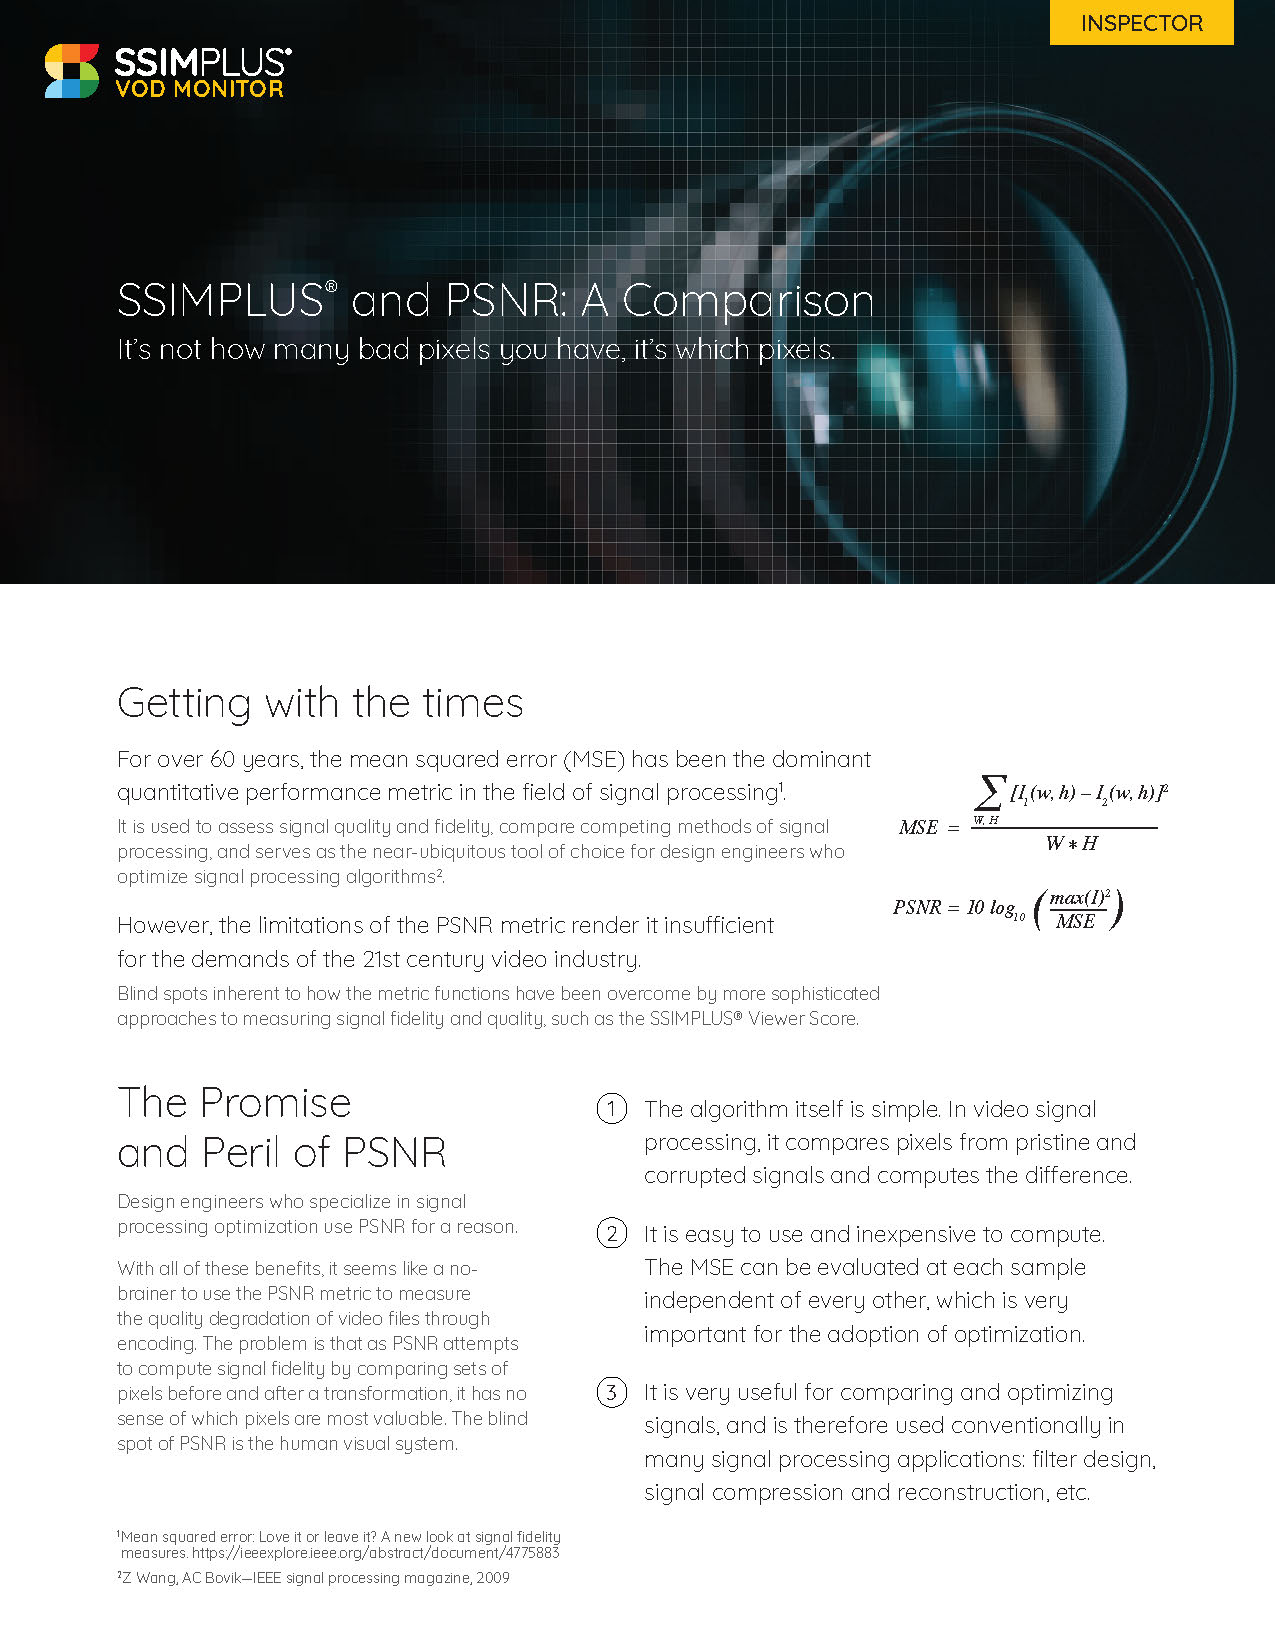 A visual of the first page of the white paper